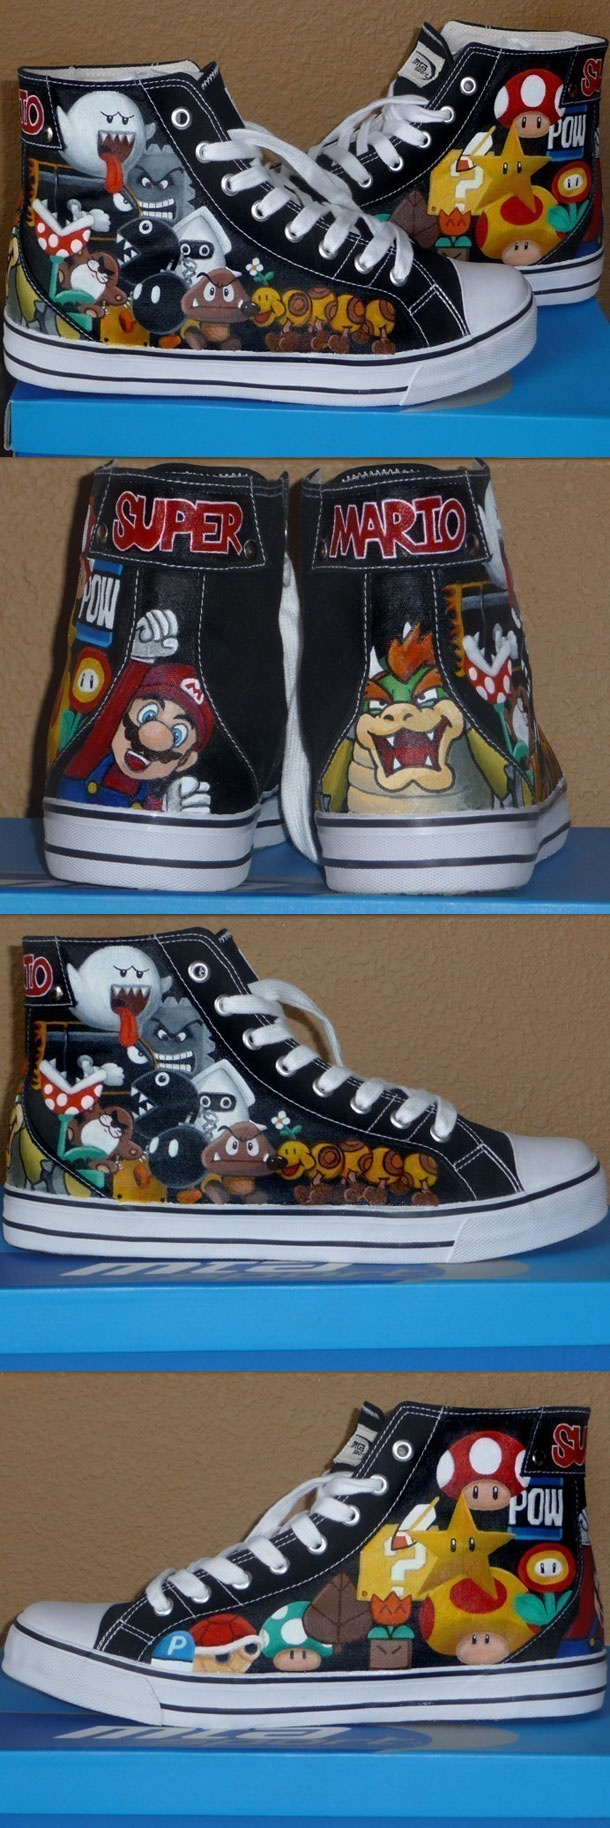 Coolest Super Mario shoes I've seen so far! Covered in power ups and enemies